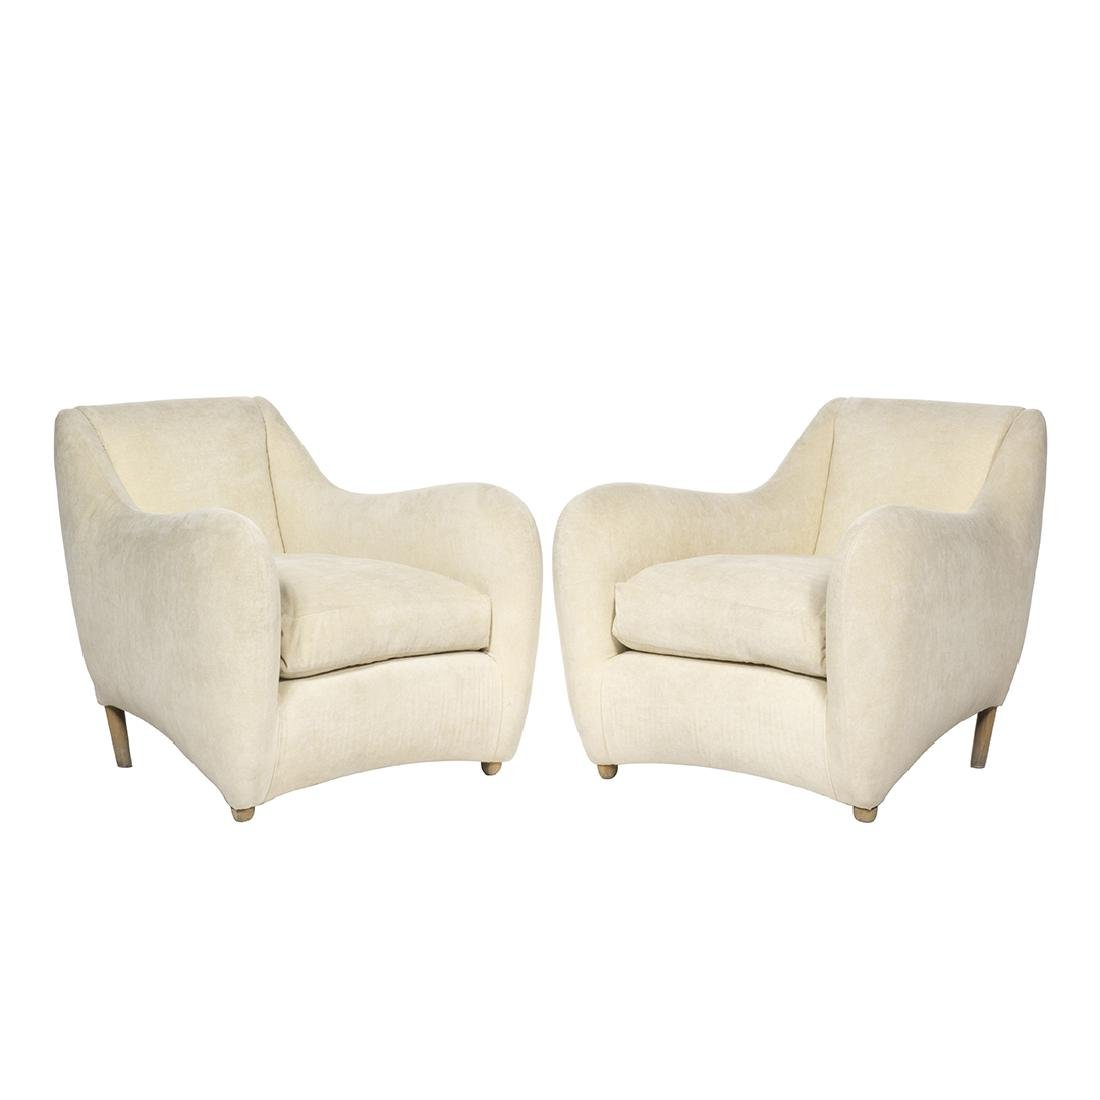 Matthew Hilton Balzac Chairs (2)